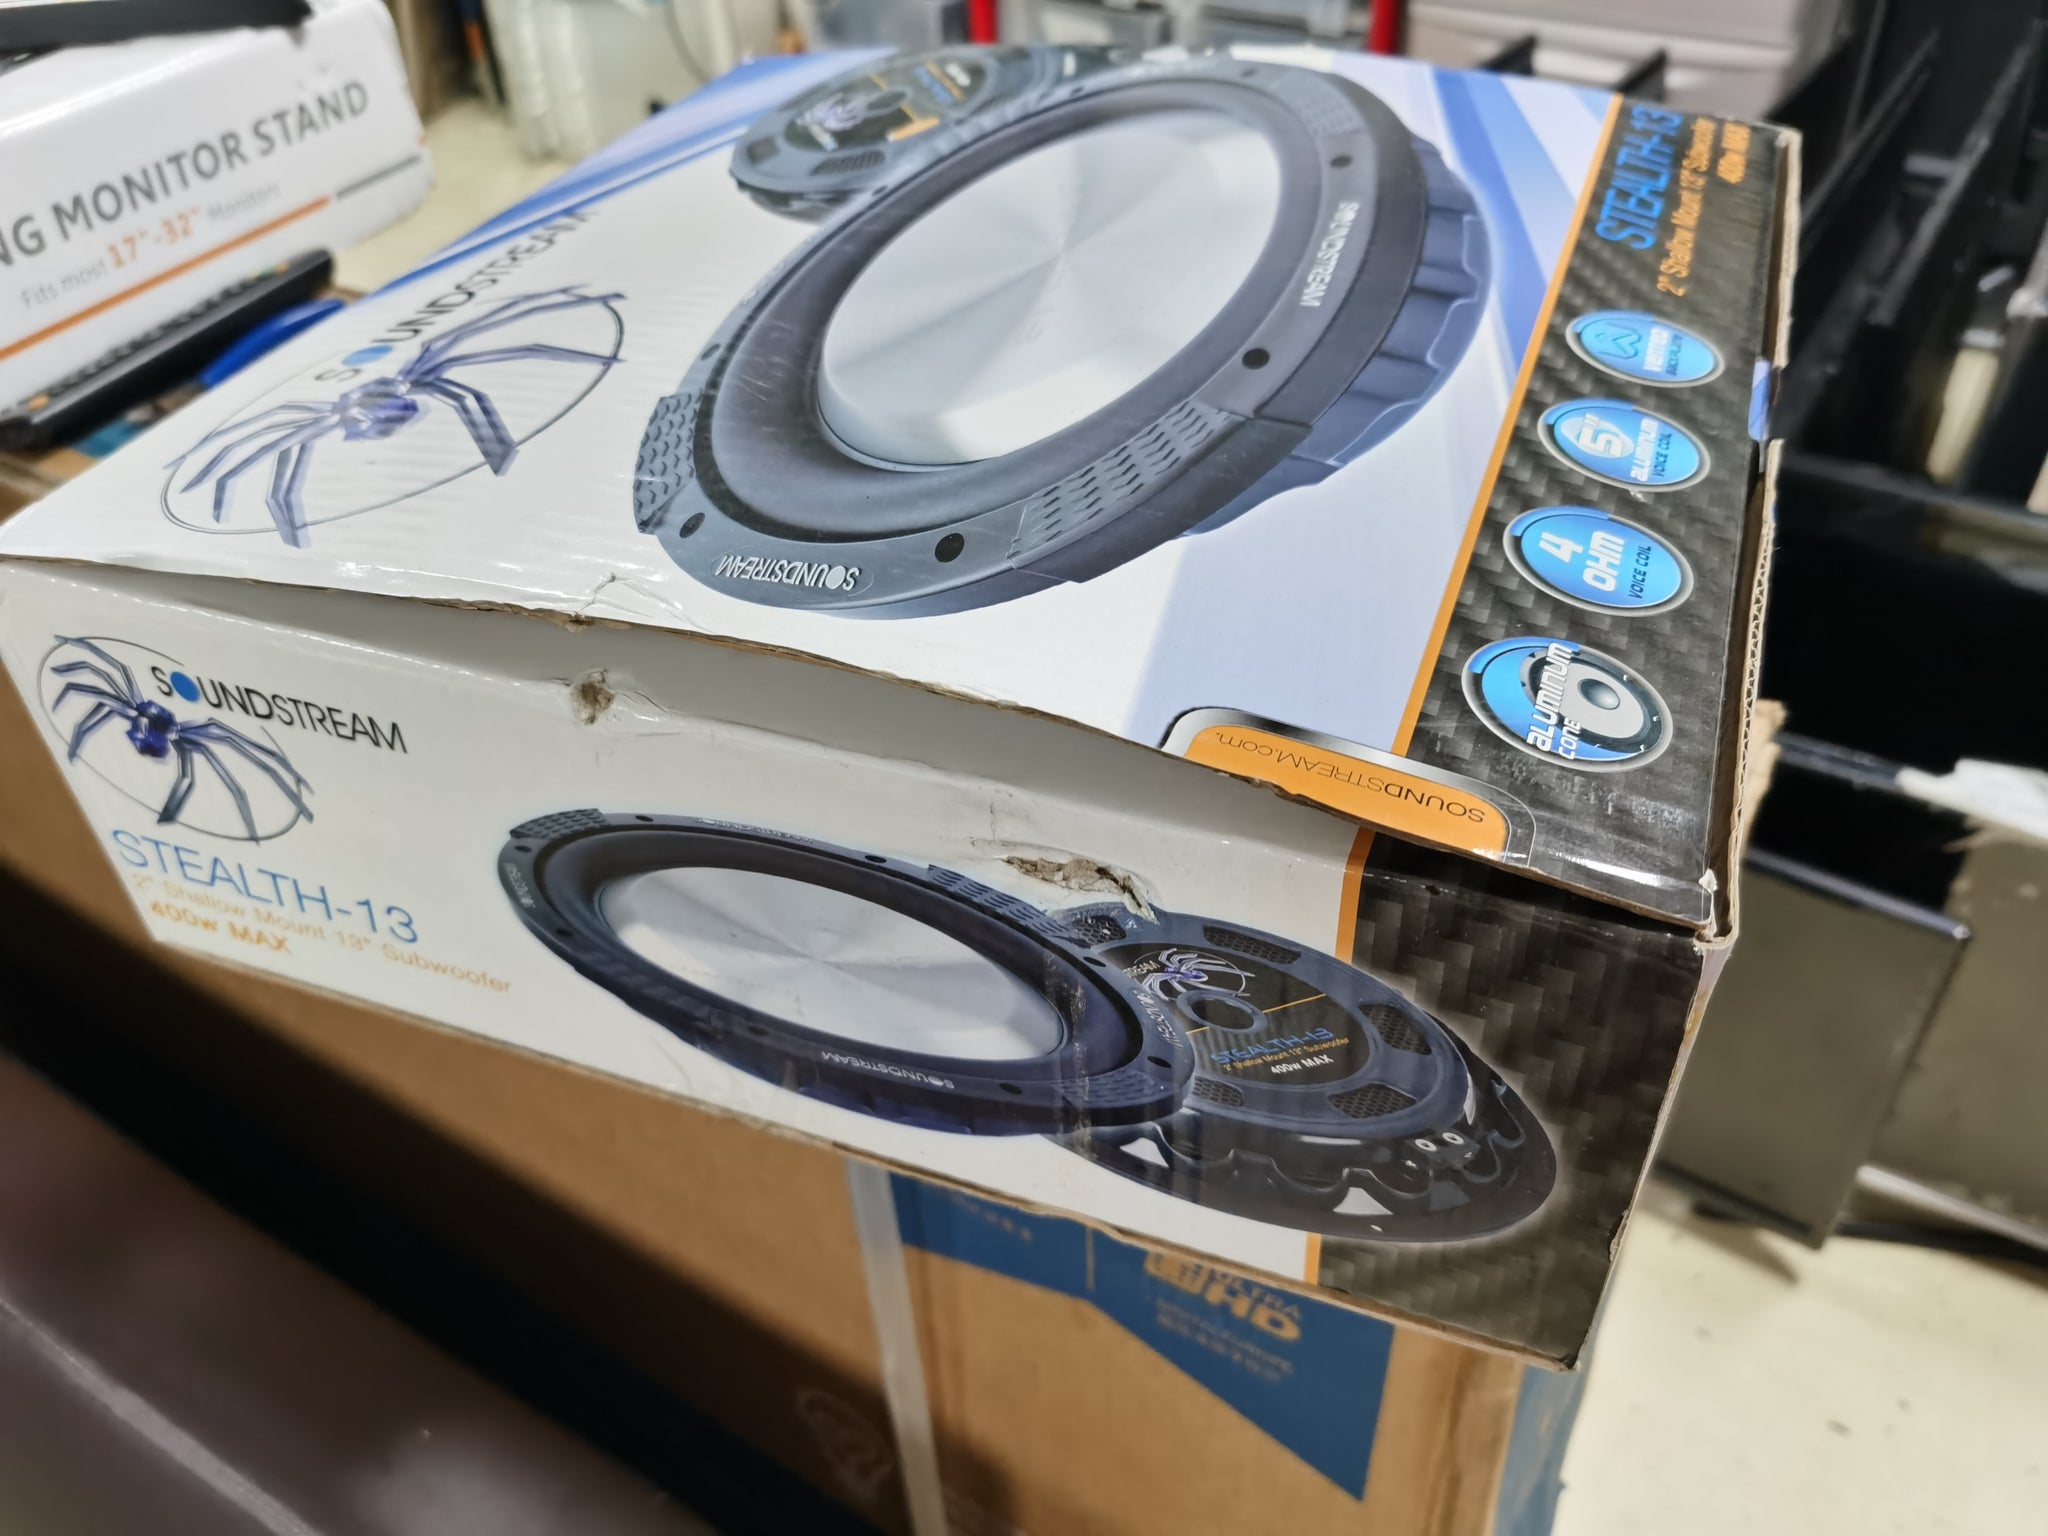 soundstream stealth-13 13吋 13INCH 汽車低音(全新) $2500